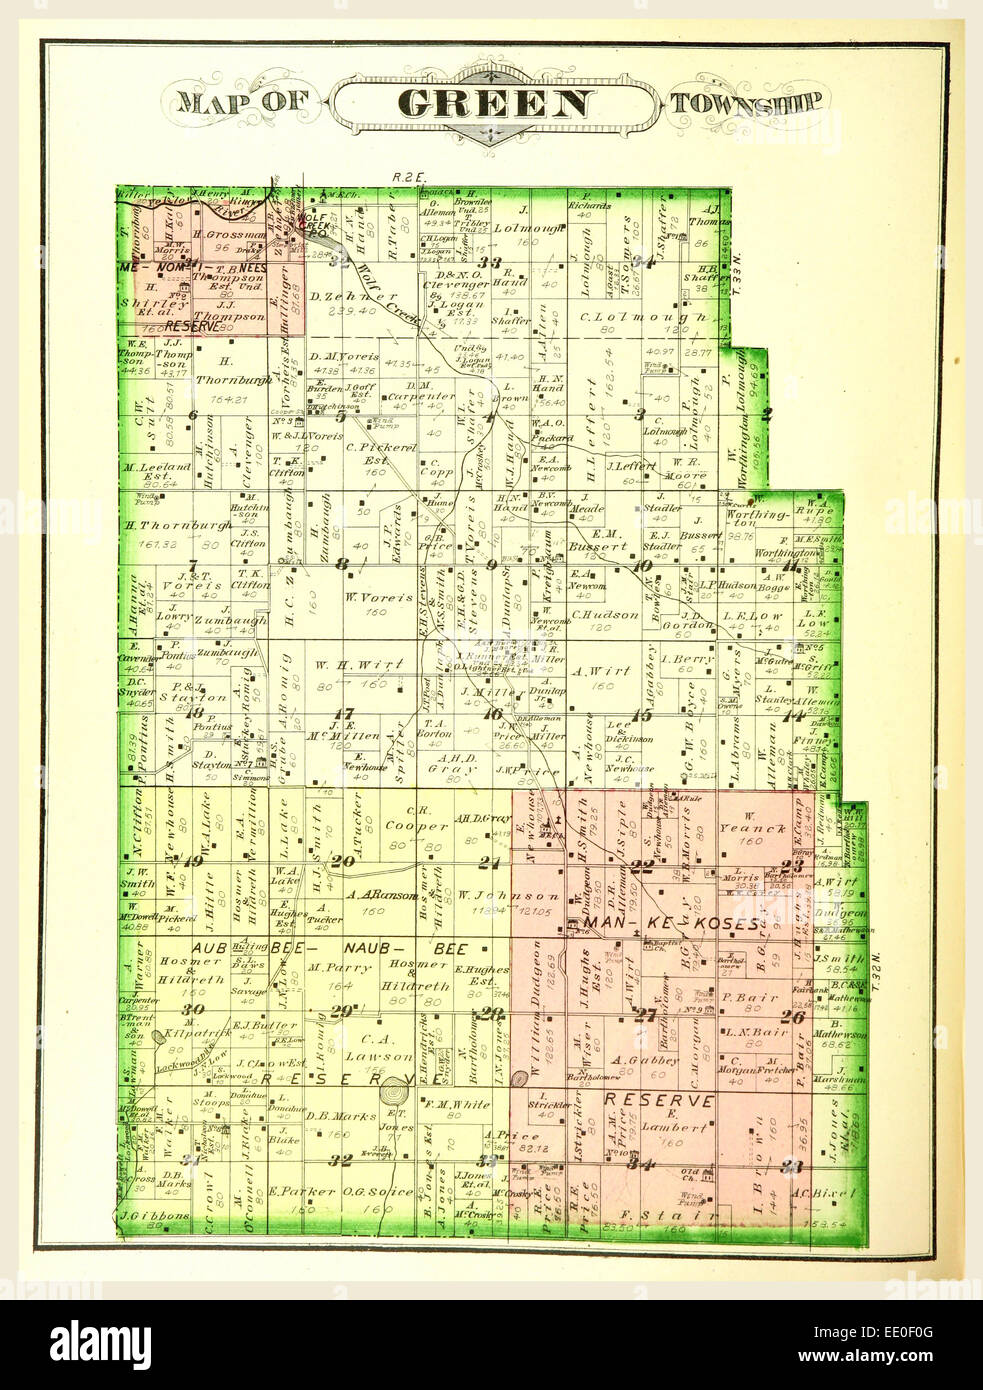 Map of Green township, History of Marshall county, Indiana, 1836 to 1880, etc, 19th century engraving, US, America - Stock Image